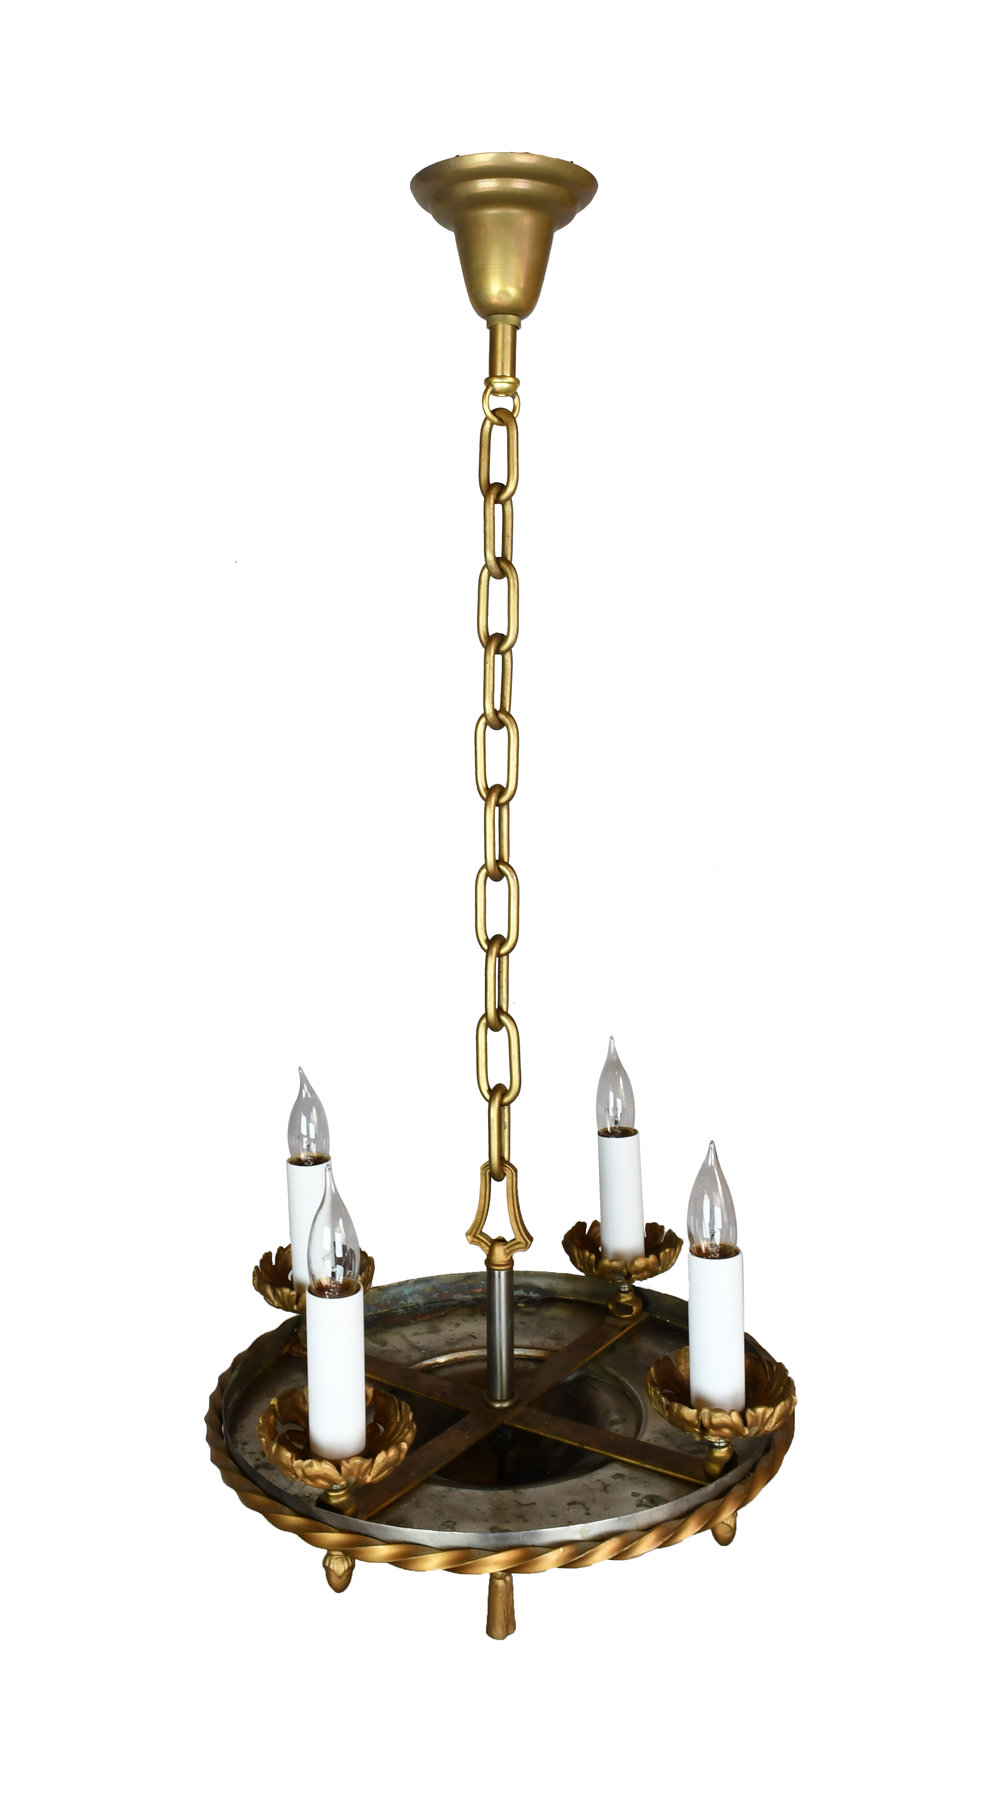 47420-4-candle-brass-gothic-chand-main-20.jpg